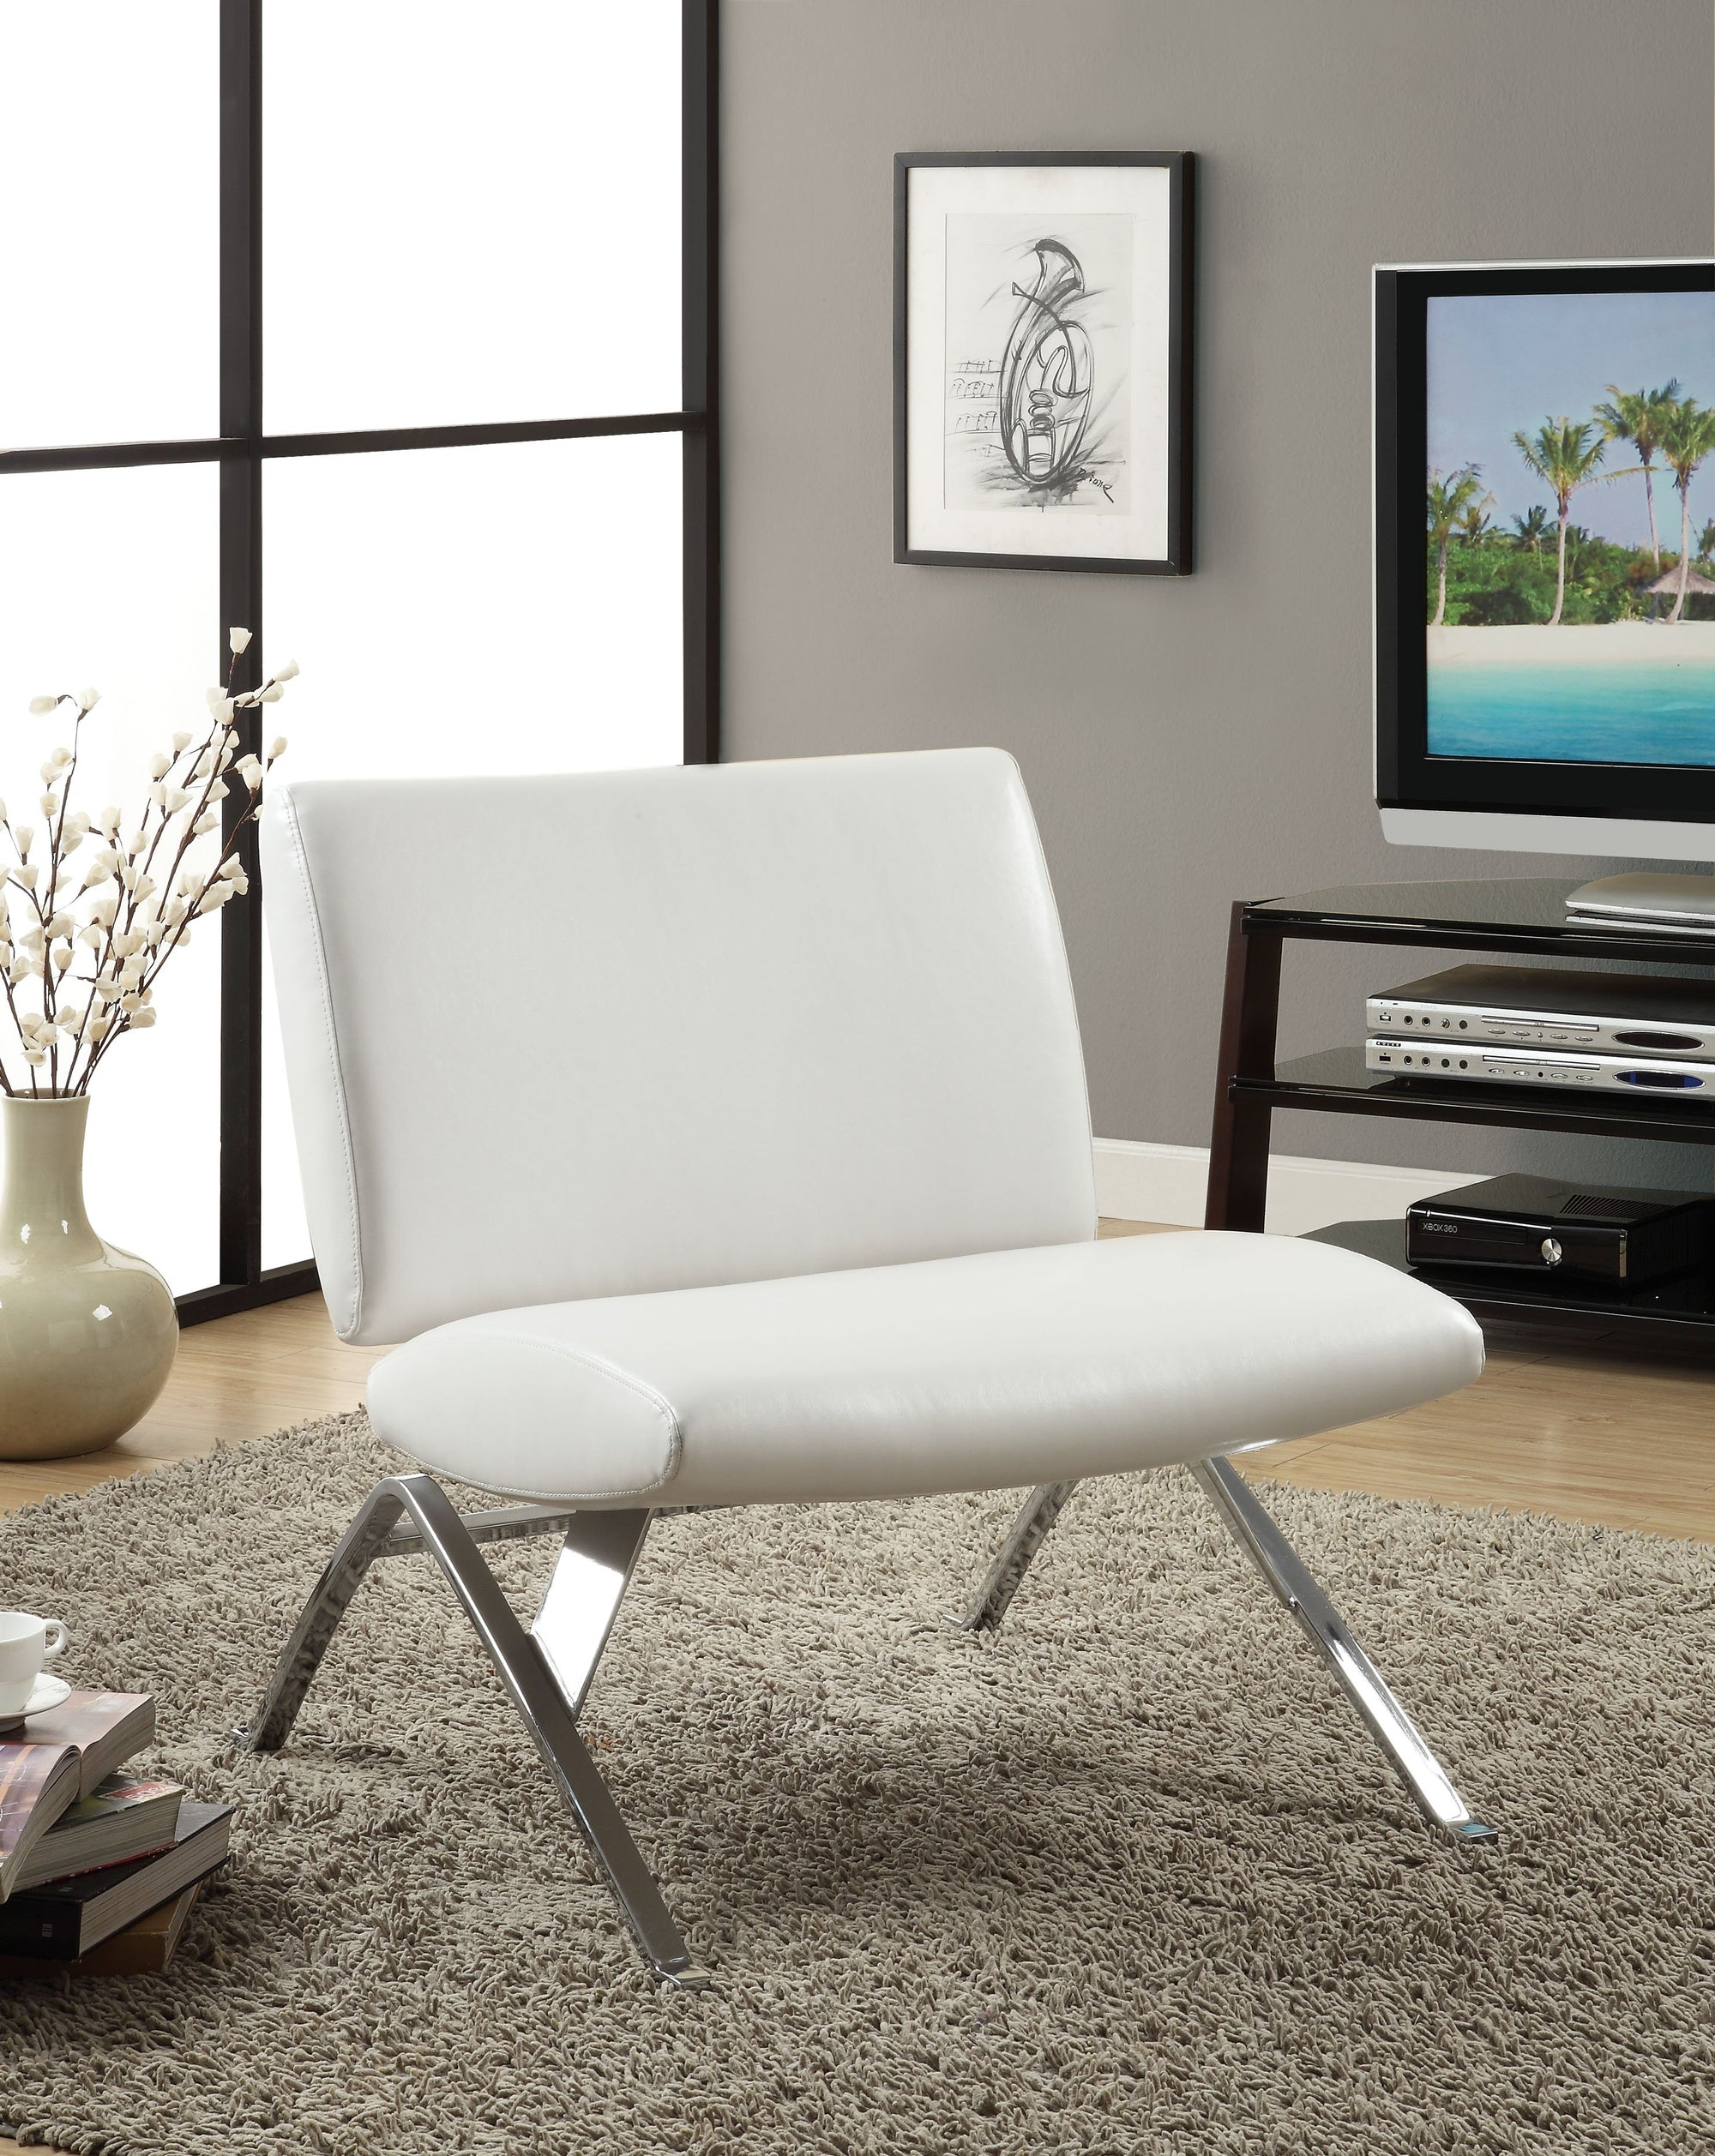 Fine Accent Chair White Leather Look Fabric Chrome Base Cjindustries Chair Design For Home Cjindustriesco